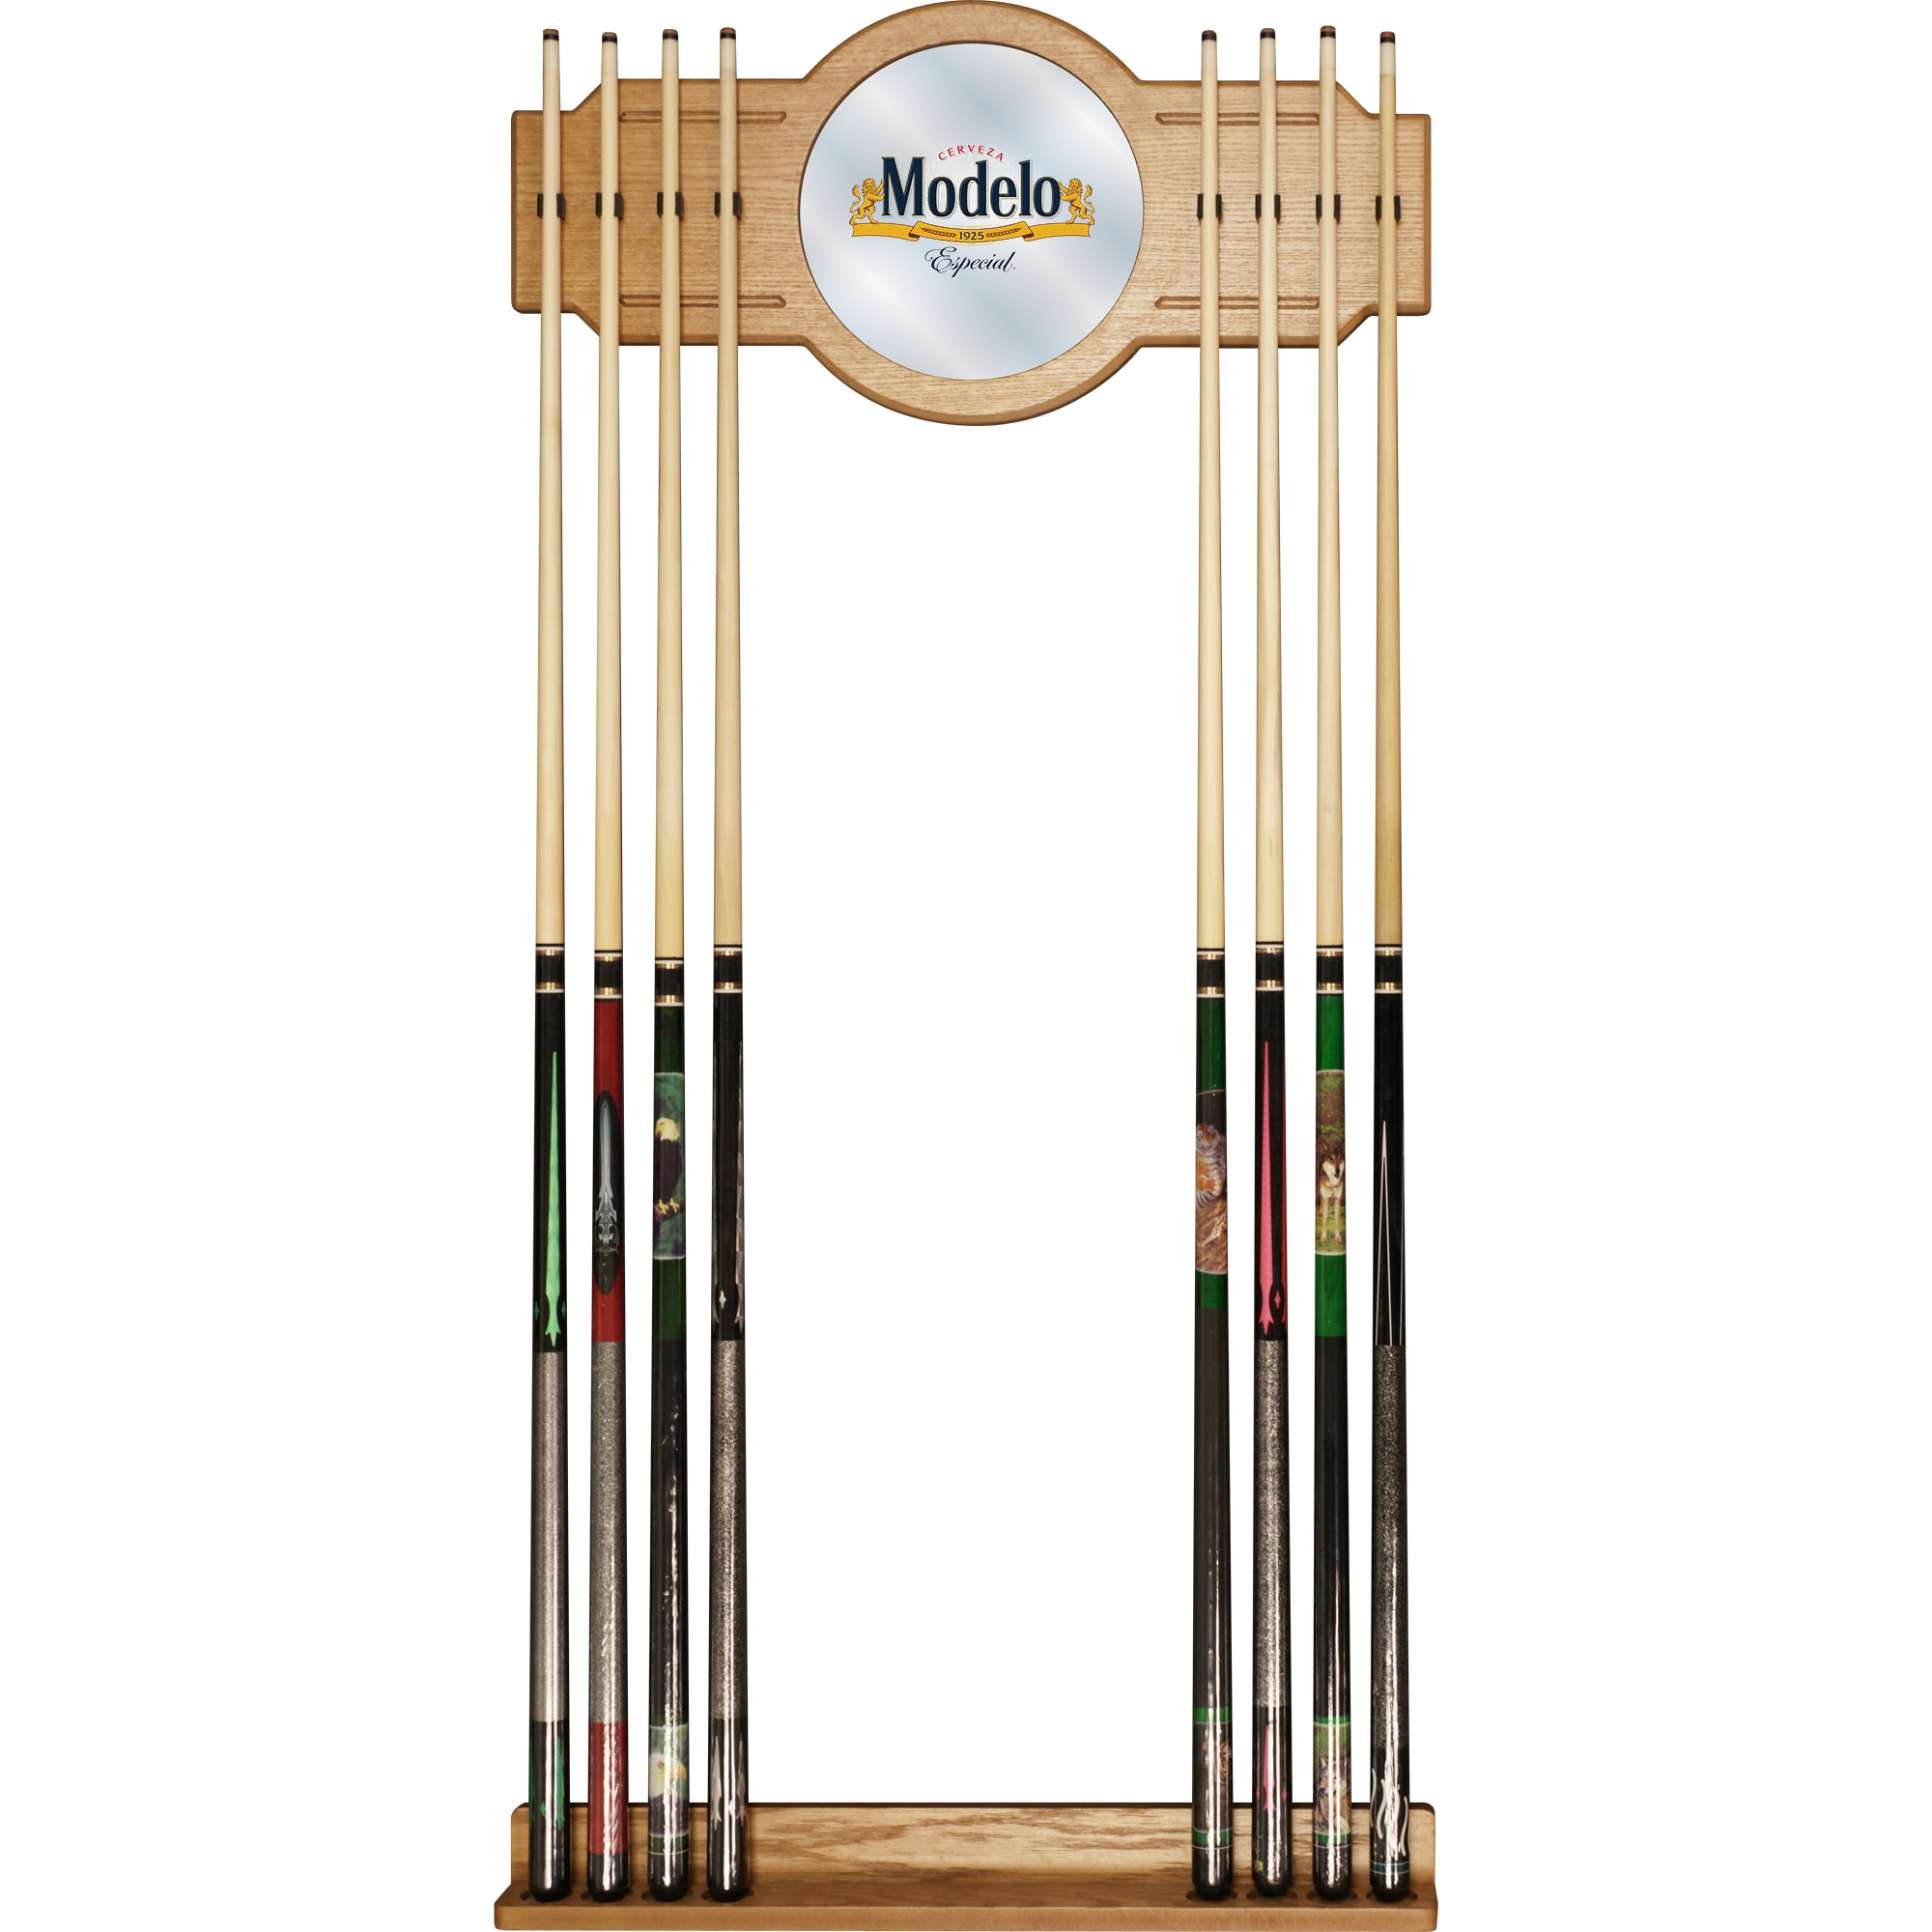 Trademark Modelo Stained Wood Cue Rack with Mirror (4L x ...